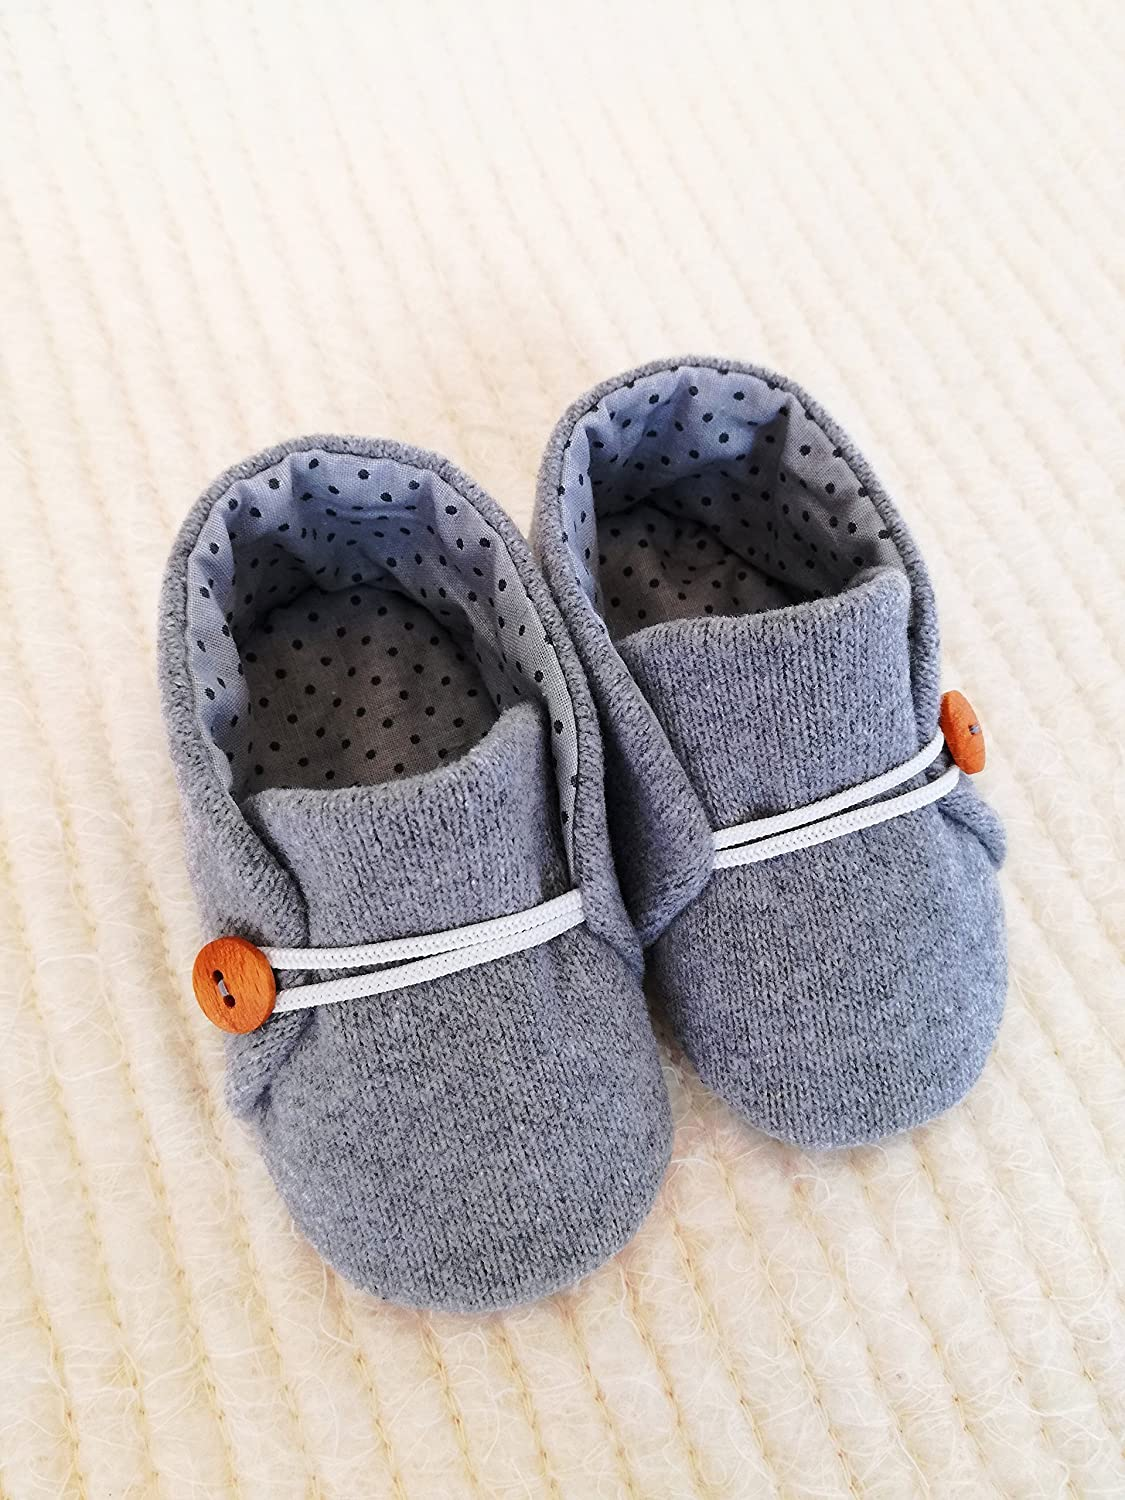 Baby Moccs, Infant Girl Shoes, Infant Booties, Soft Sole Baby Shoes, Soft Sole Shoes, Baby Shoes, Soft Sole Booties, Baby Moccasins, Moccs, Infant Booties, Newborn Boy Shoes, Baby Oxfords, Baby Girl